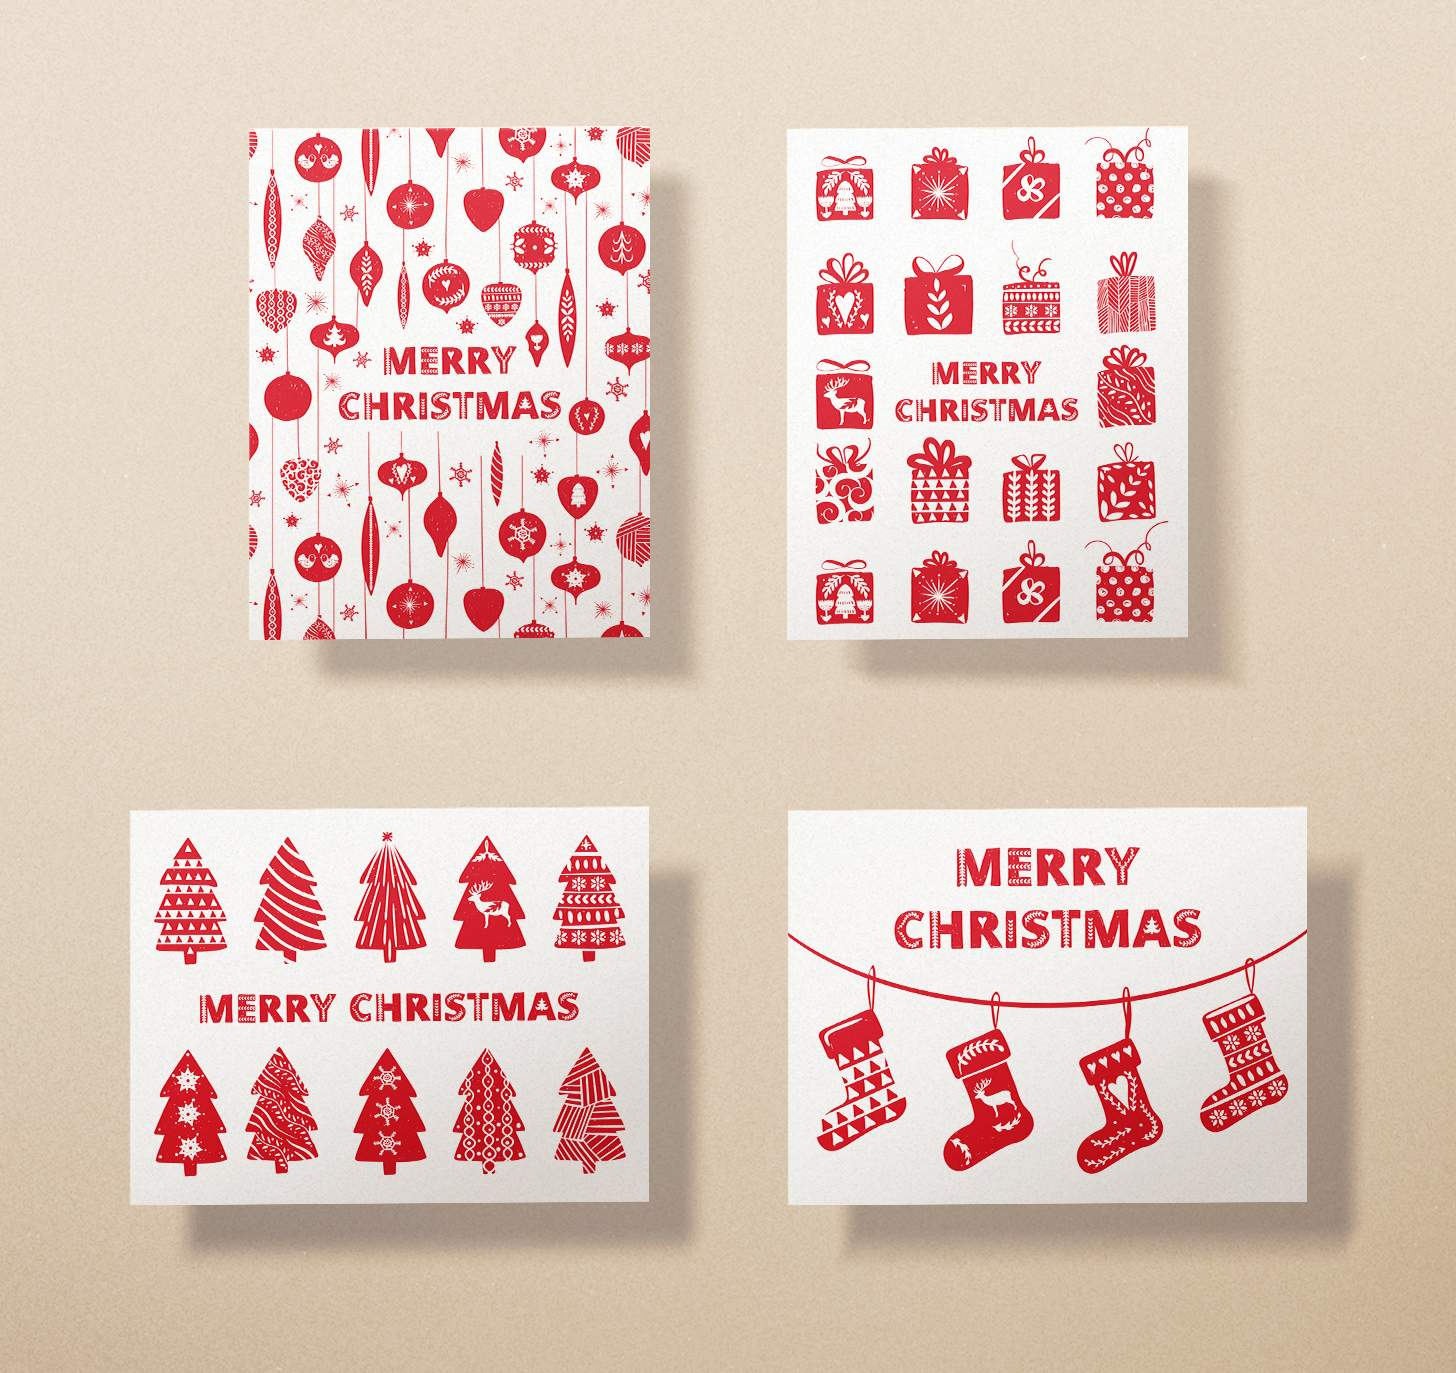 Four assorted merry Christmas cards with trees, presents, stockings, and ornaments designs